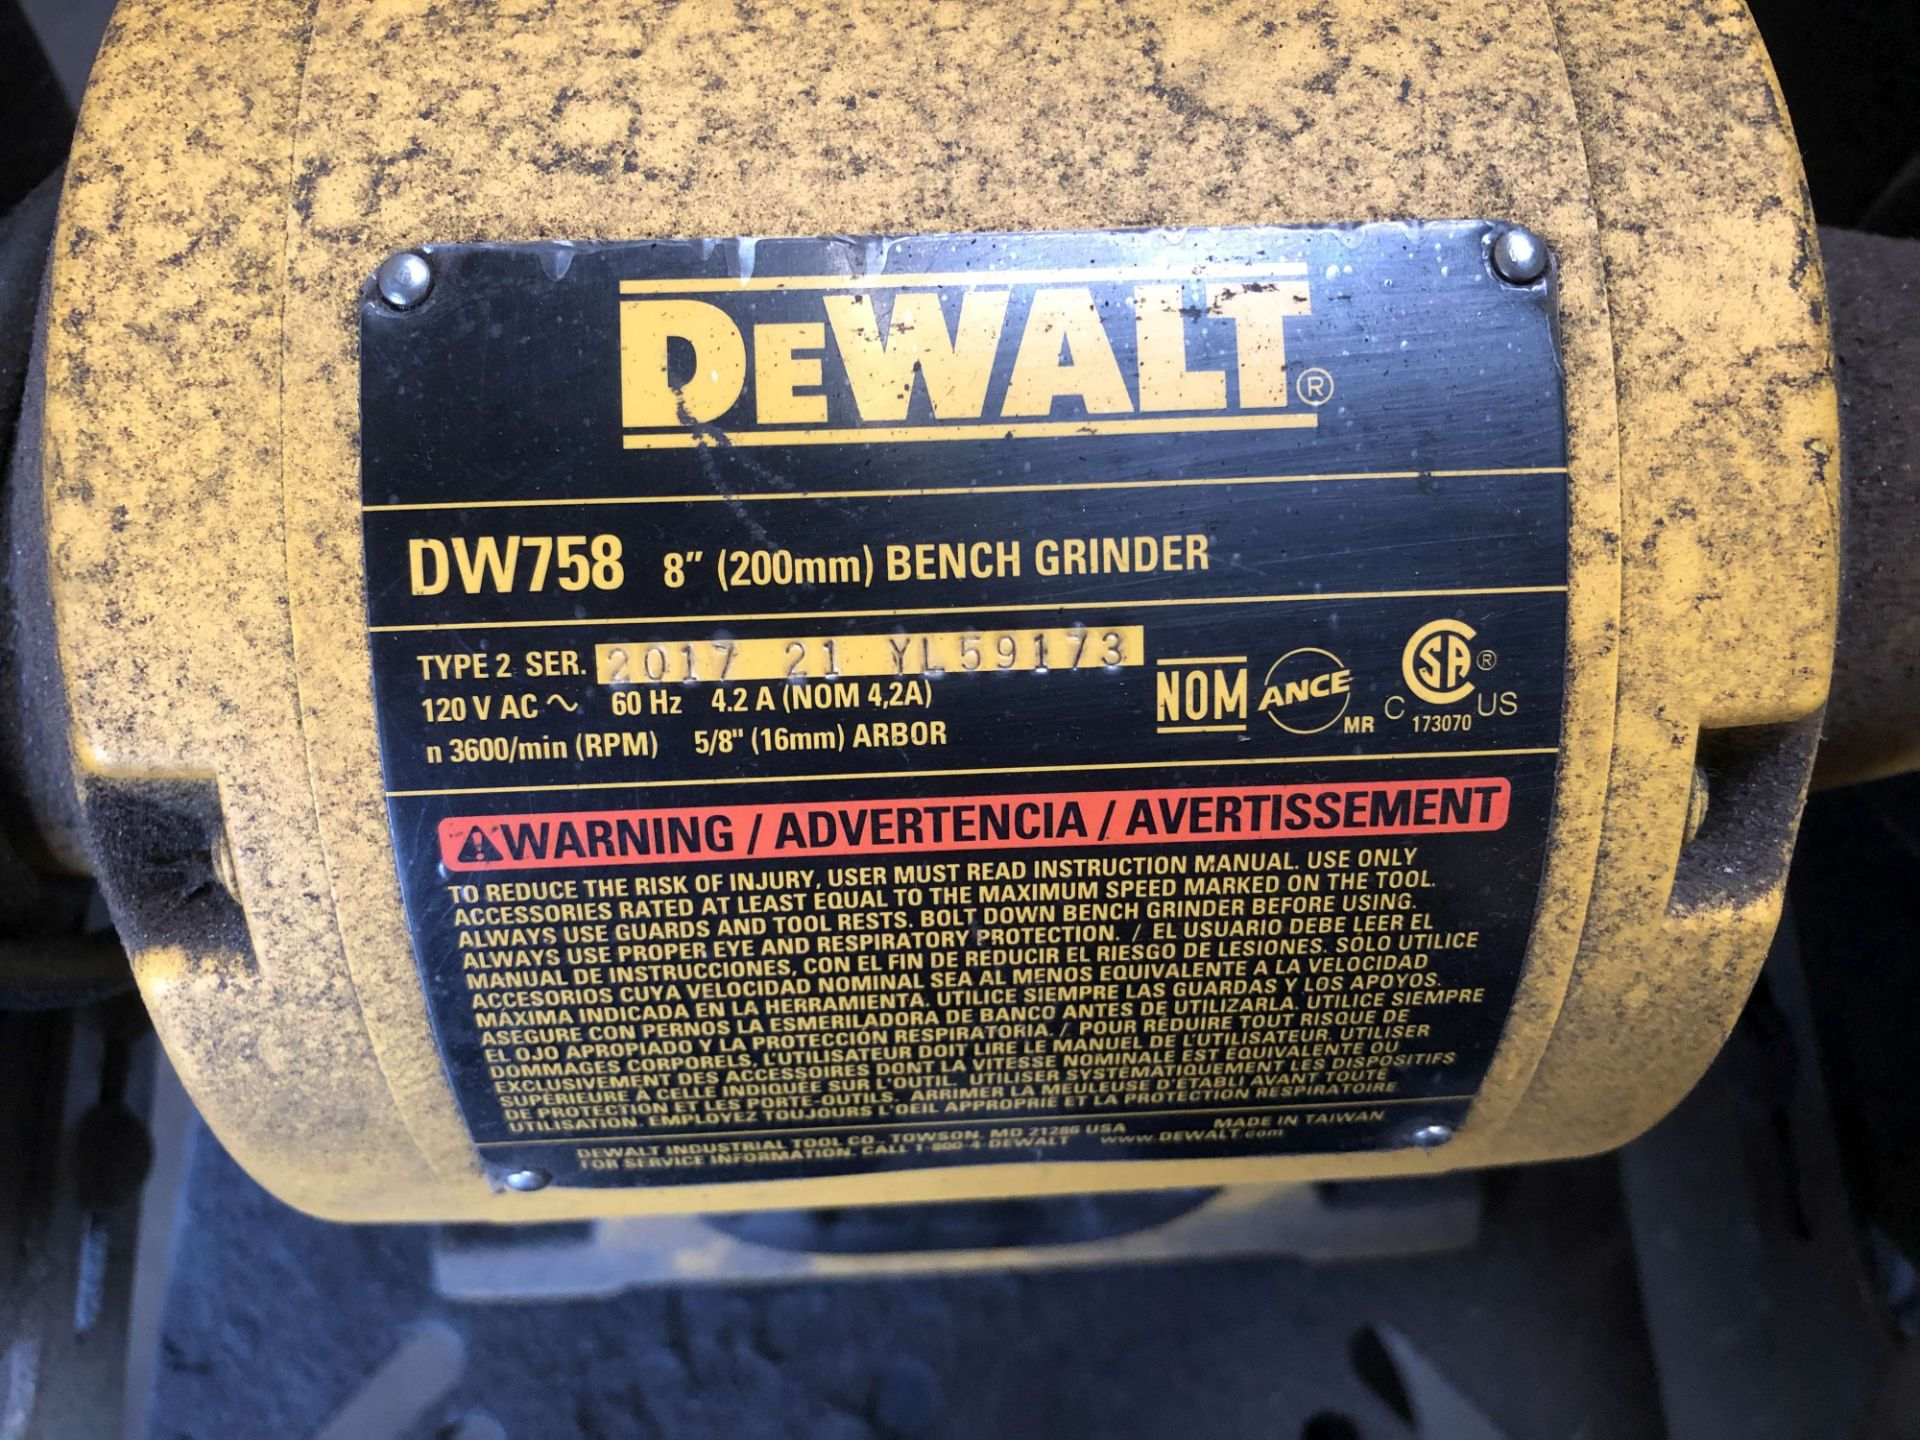 "Lot 46 - DeWalt 8"" Bench Grinder w/ Pedestal, Model DW758"